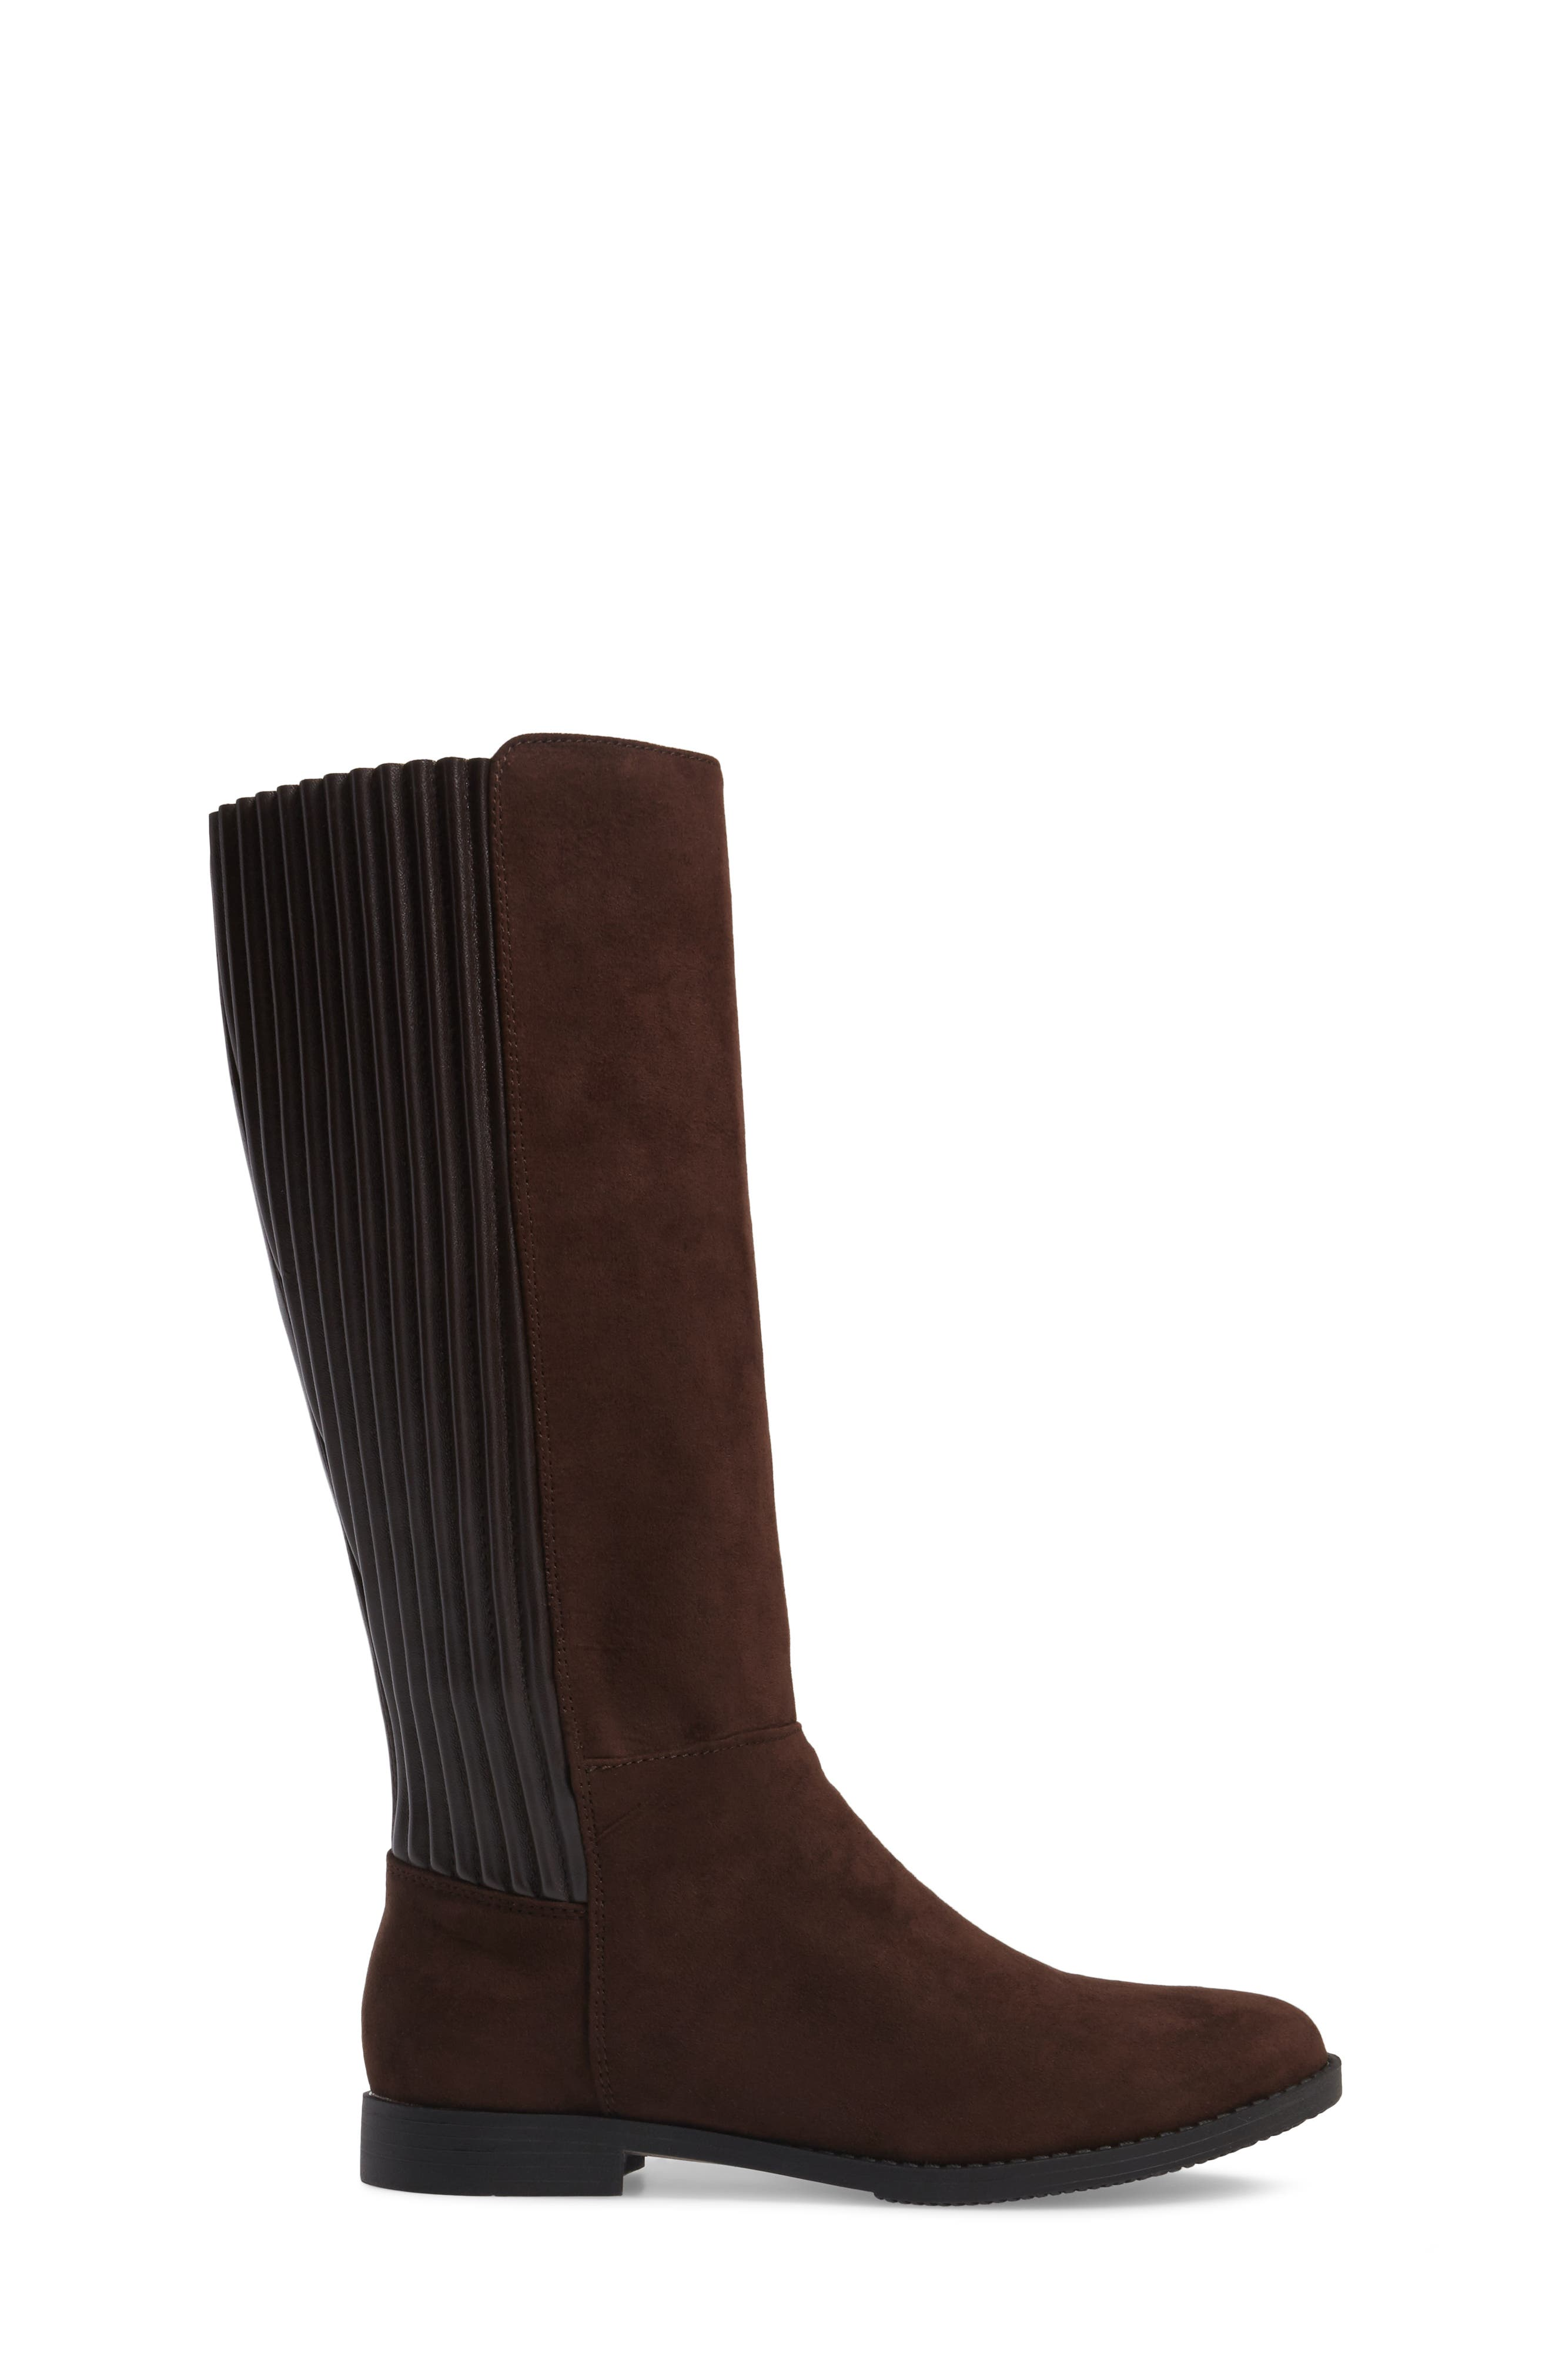 Alternate Image 3  - Kenneth Cole New York Kennedy Pleated Riding Boot (Toddler, Little Kid & Big Kid)